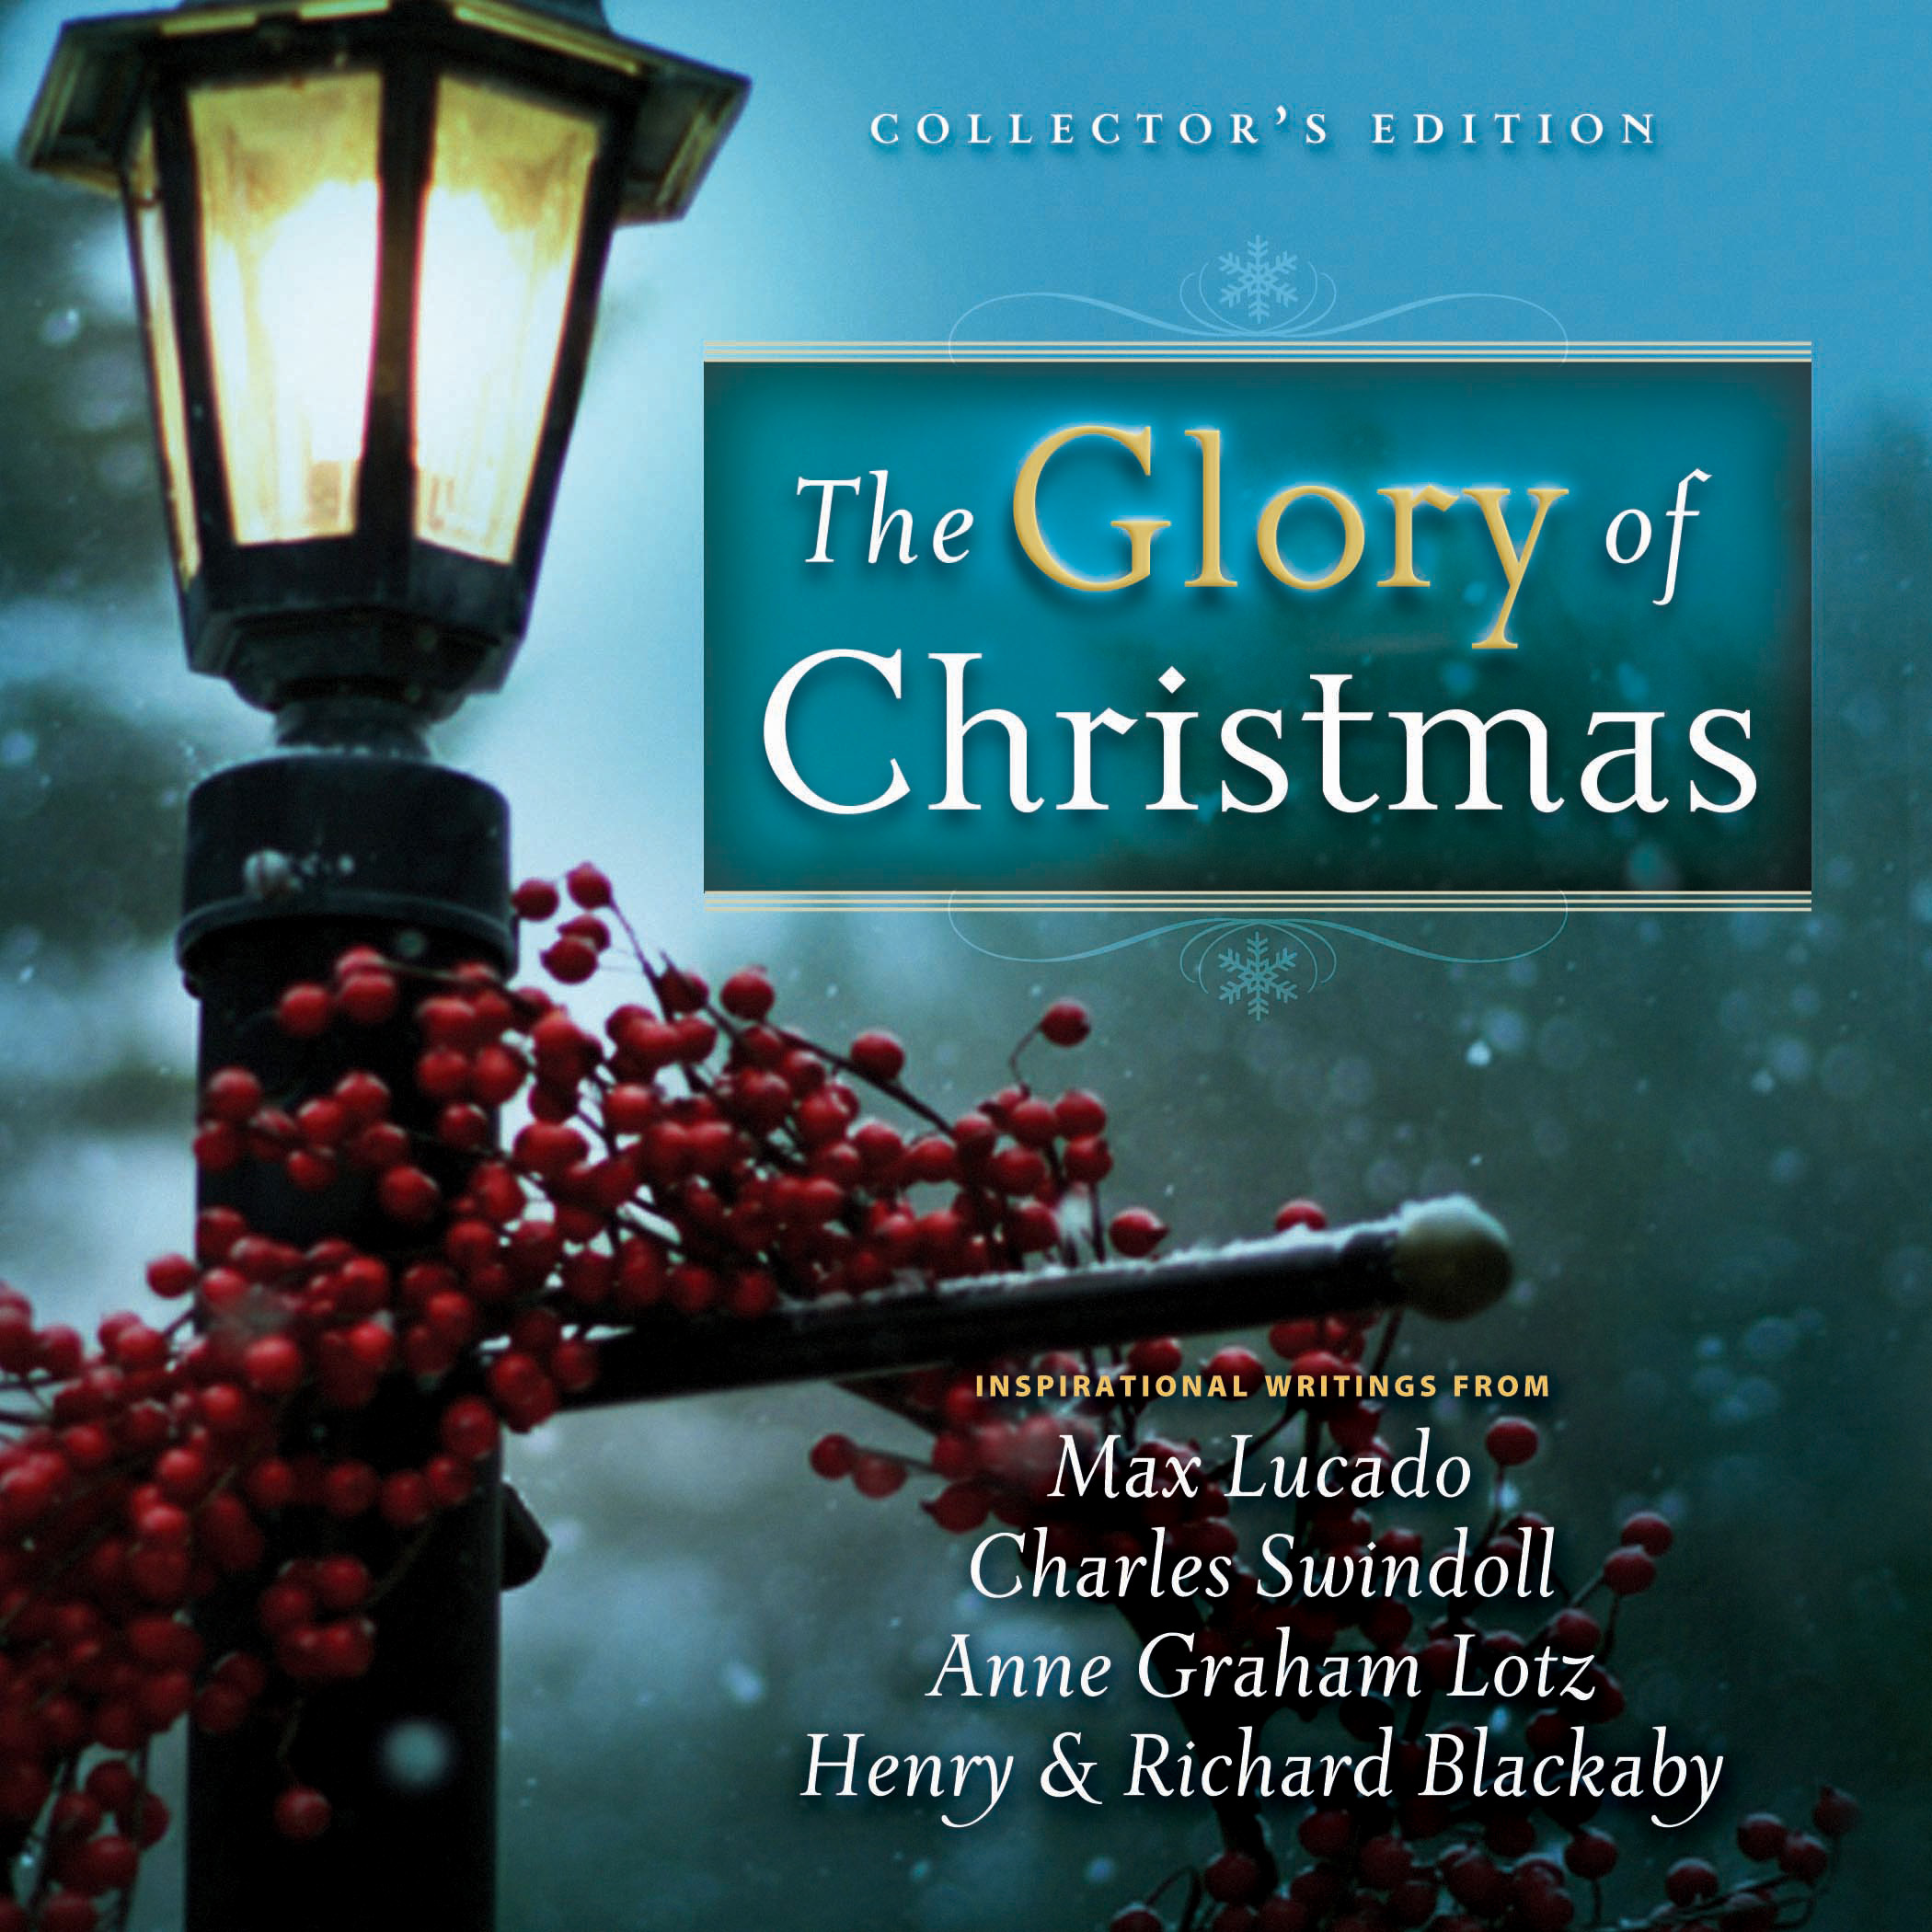 The Glory of Christmas: Collector's Edition by Max Lucado ...